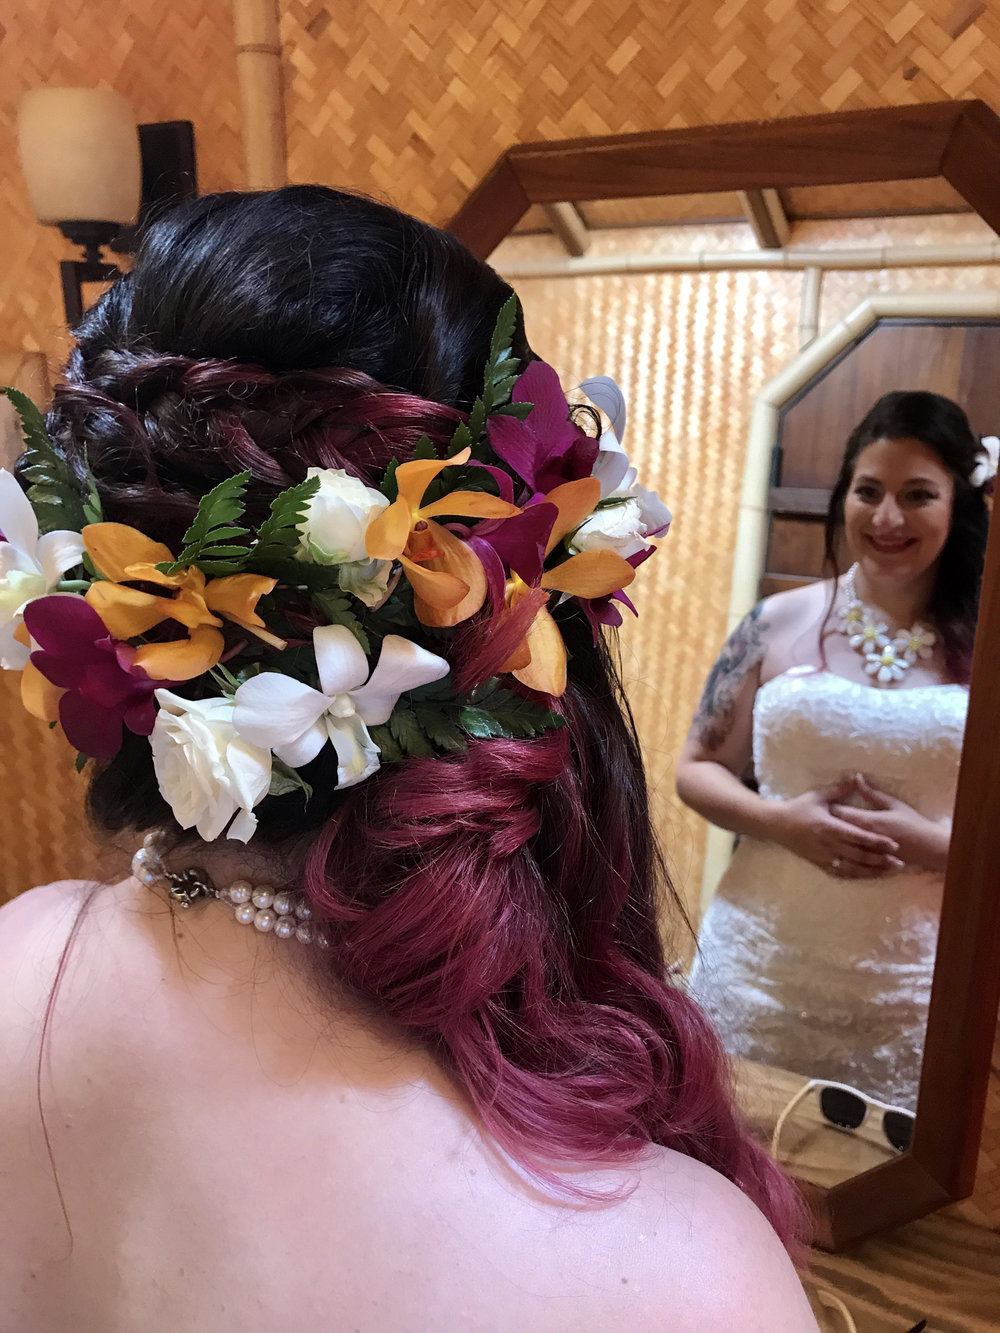 Caitlyn had orange orchids in her hair that she requested be added to her bouquet recreation. It was a fun little way to include yet another detail from their destination wedding.